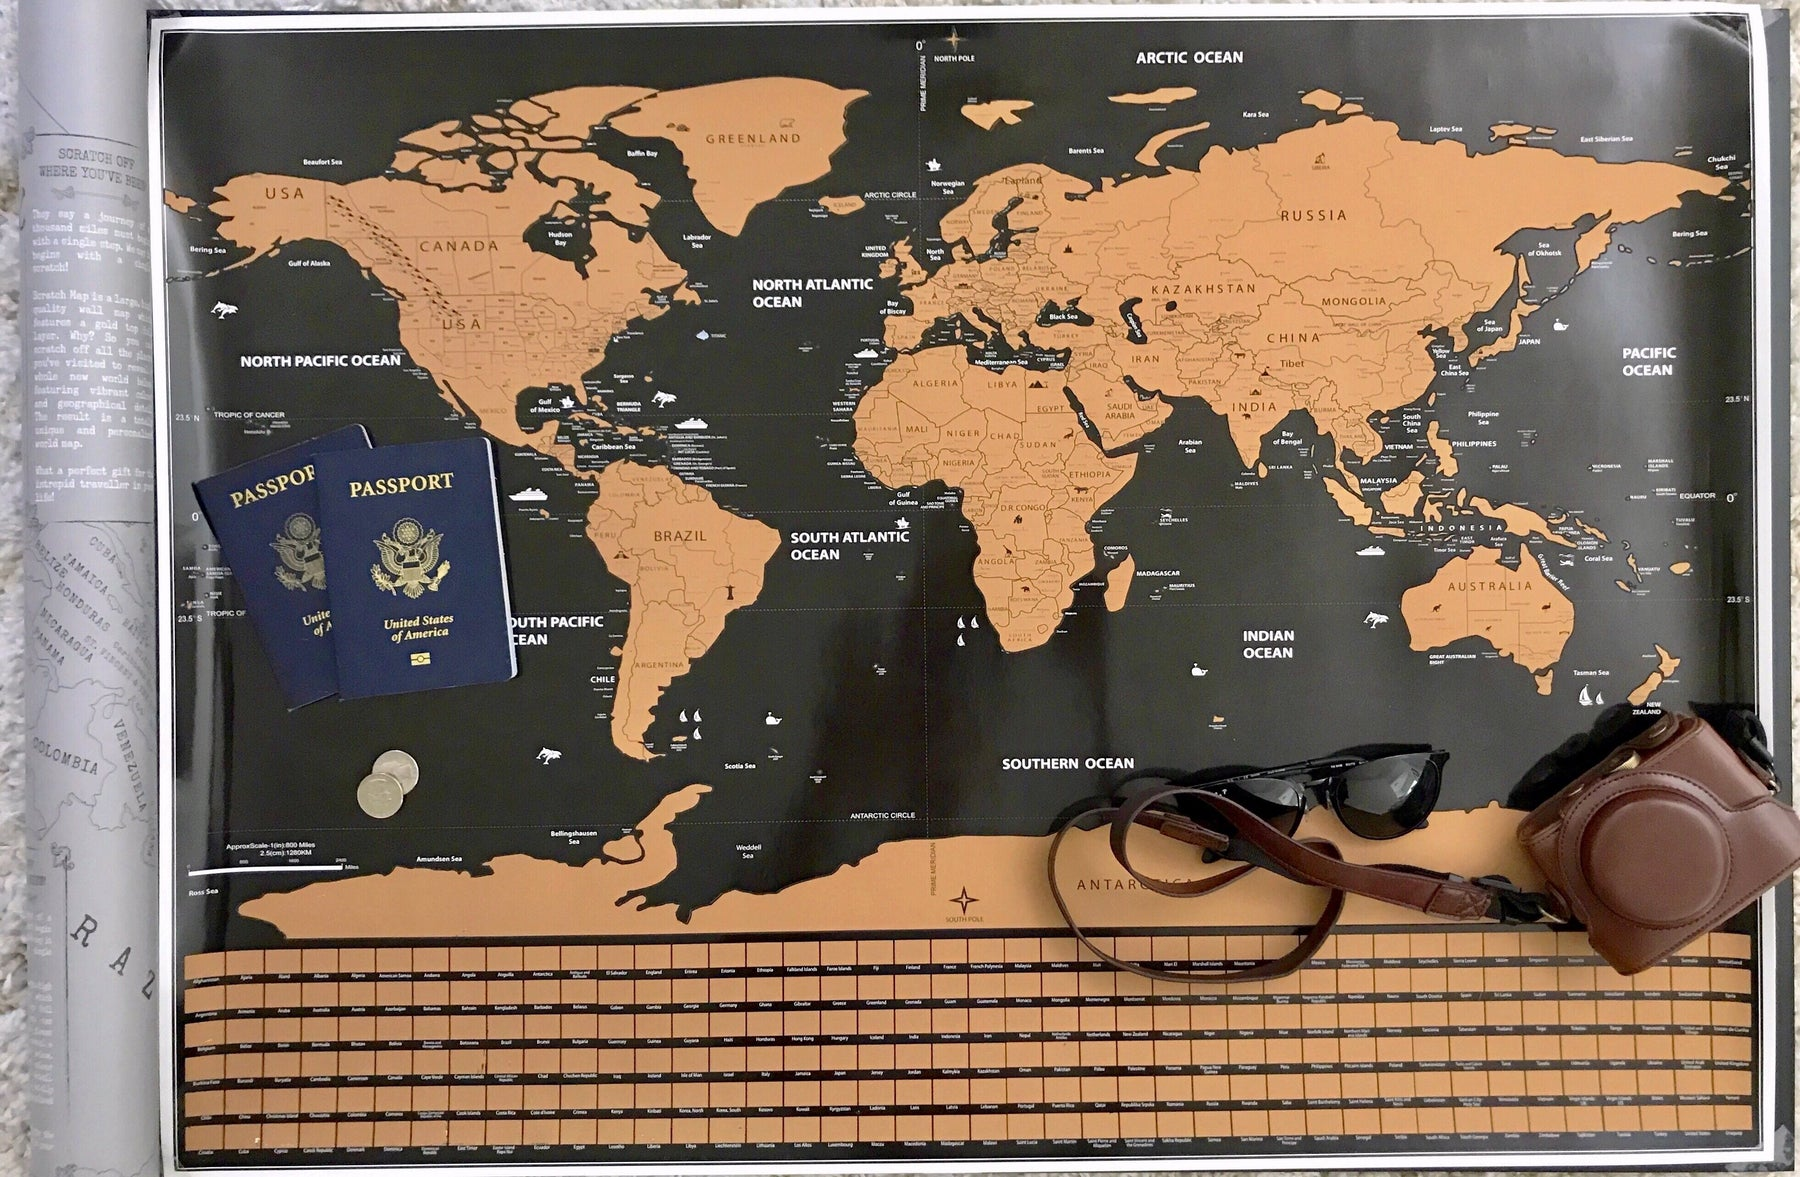 Scratch Off World Map Poster.Deluxe Scratch Off World Map Includes States Provinces Explore And